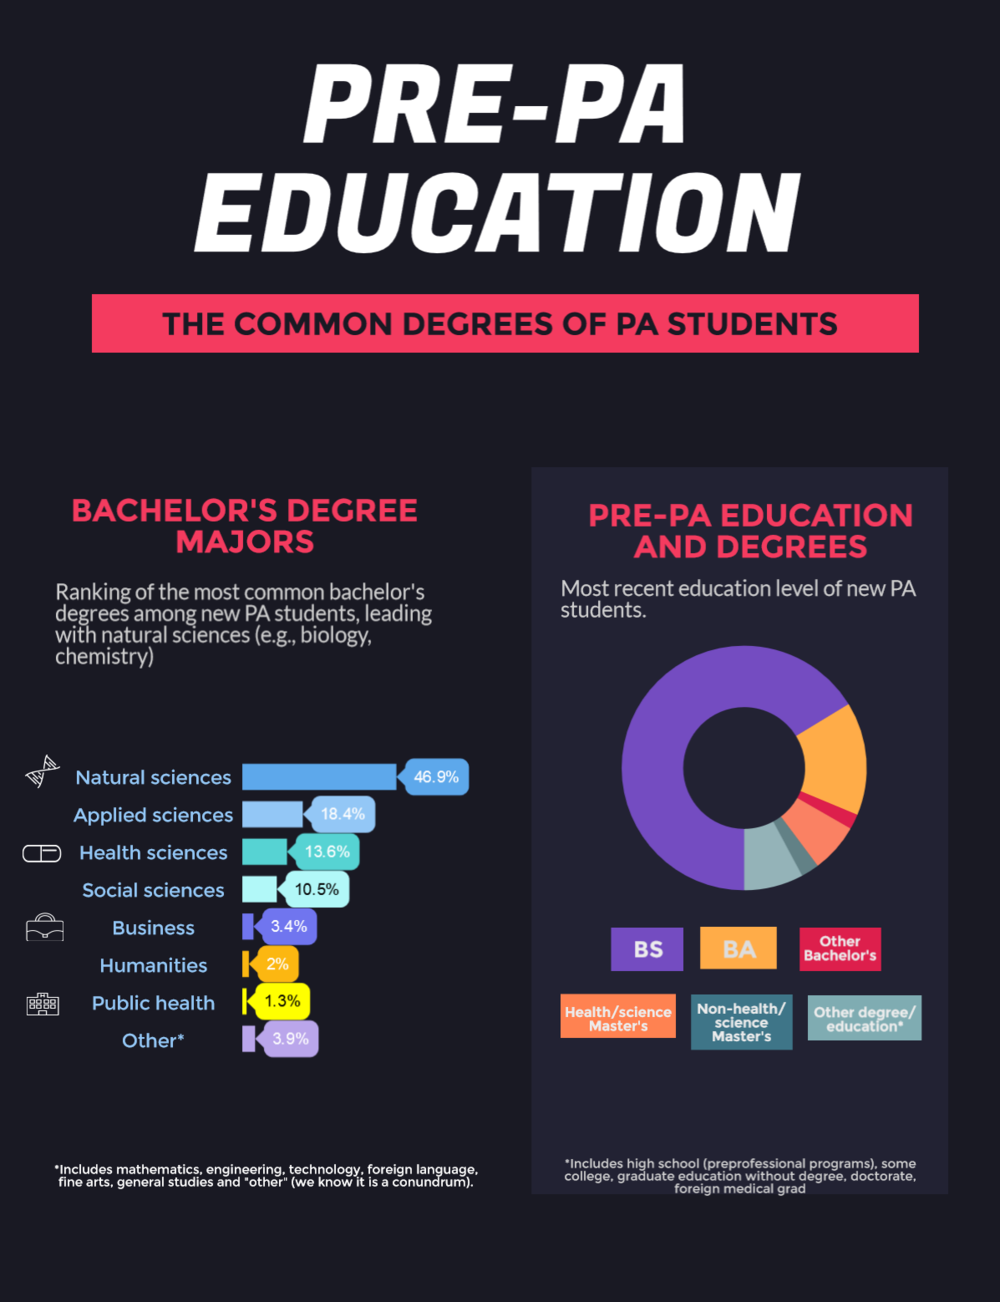 Common degrees of entering PA students